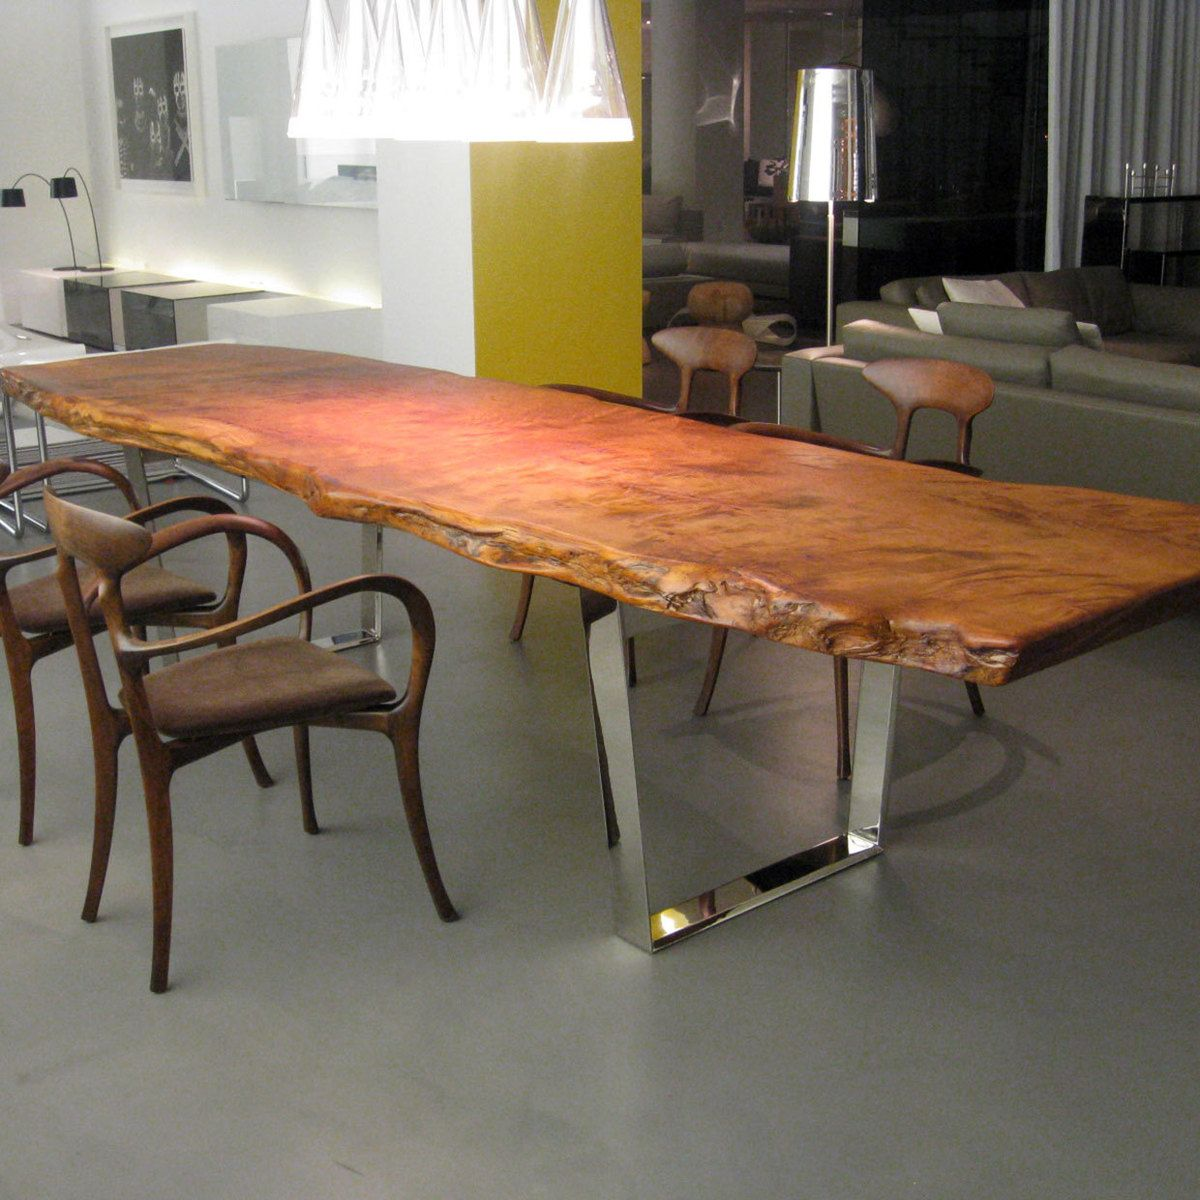 Slab Dining Table By Scott Dworkin... Referred To By Some As The U201c